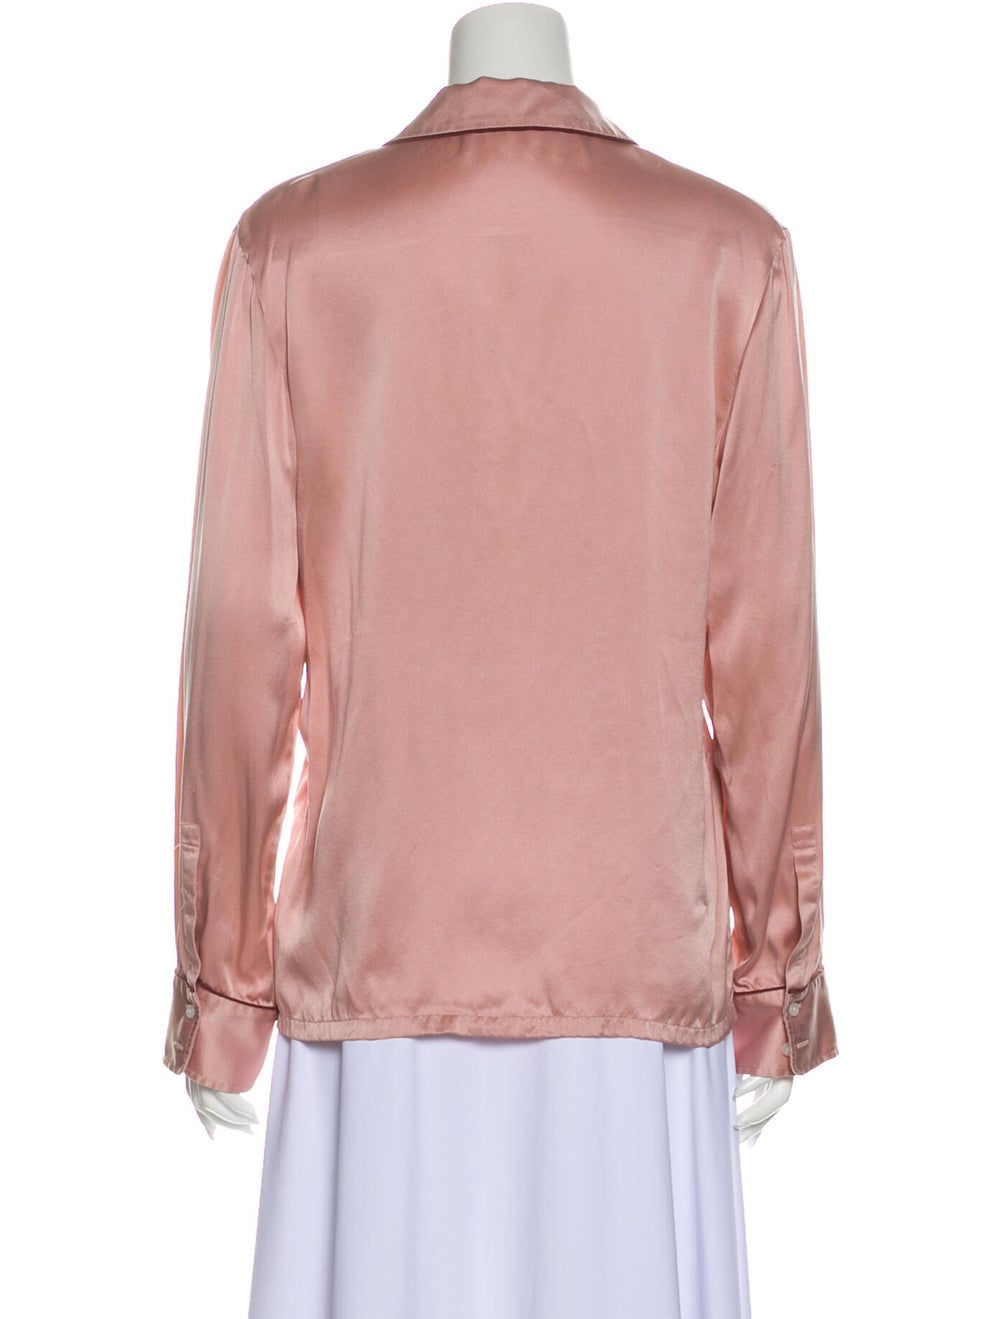 Stella McCartney Silk Pajamas Pink - image 3